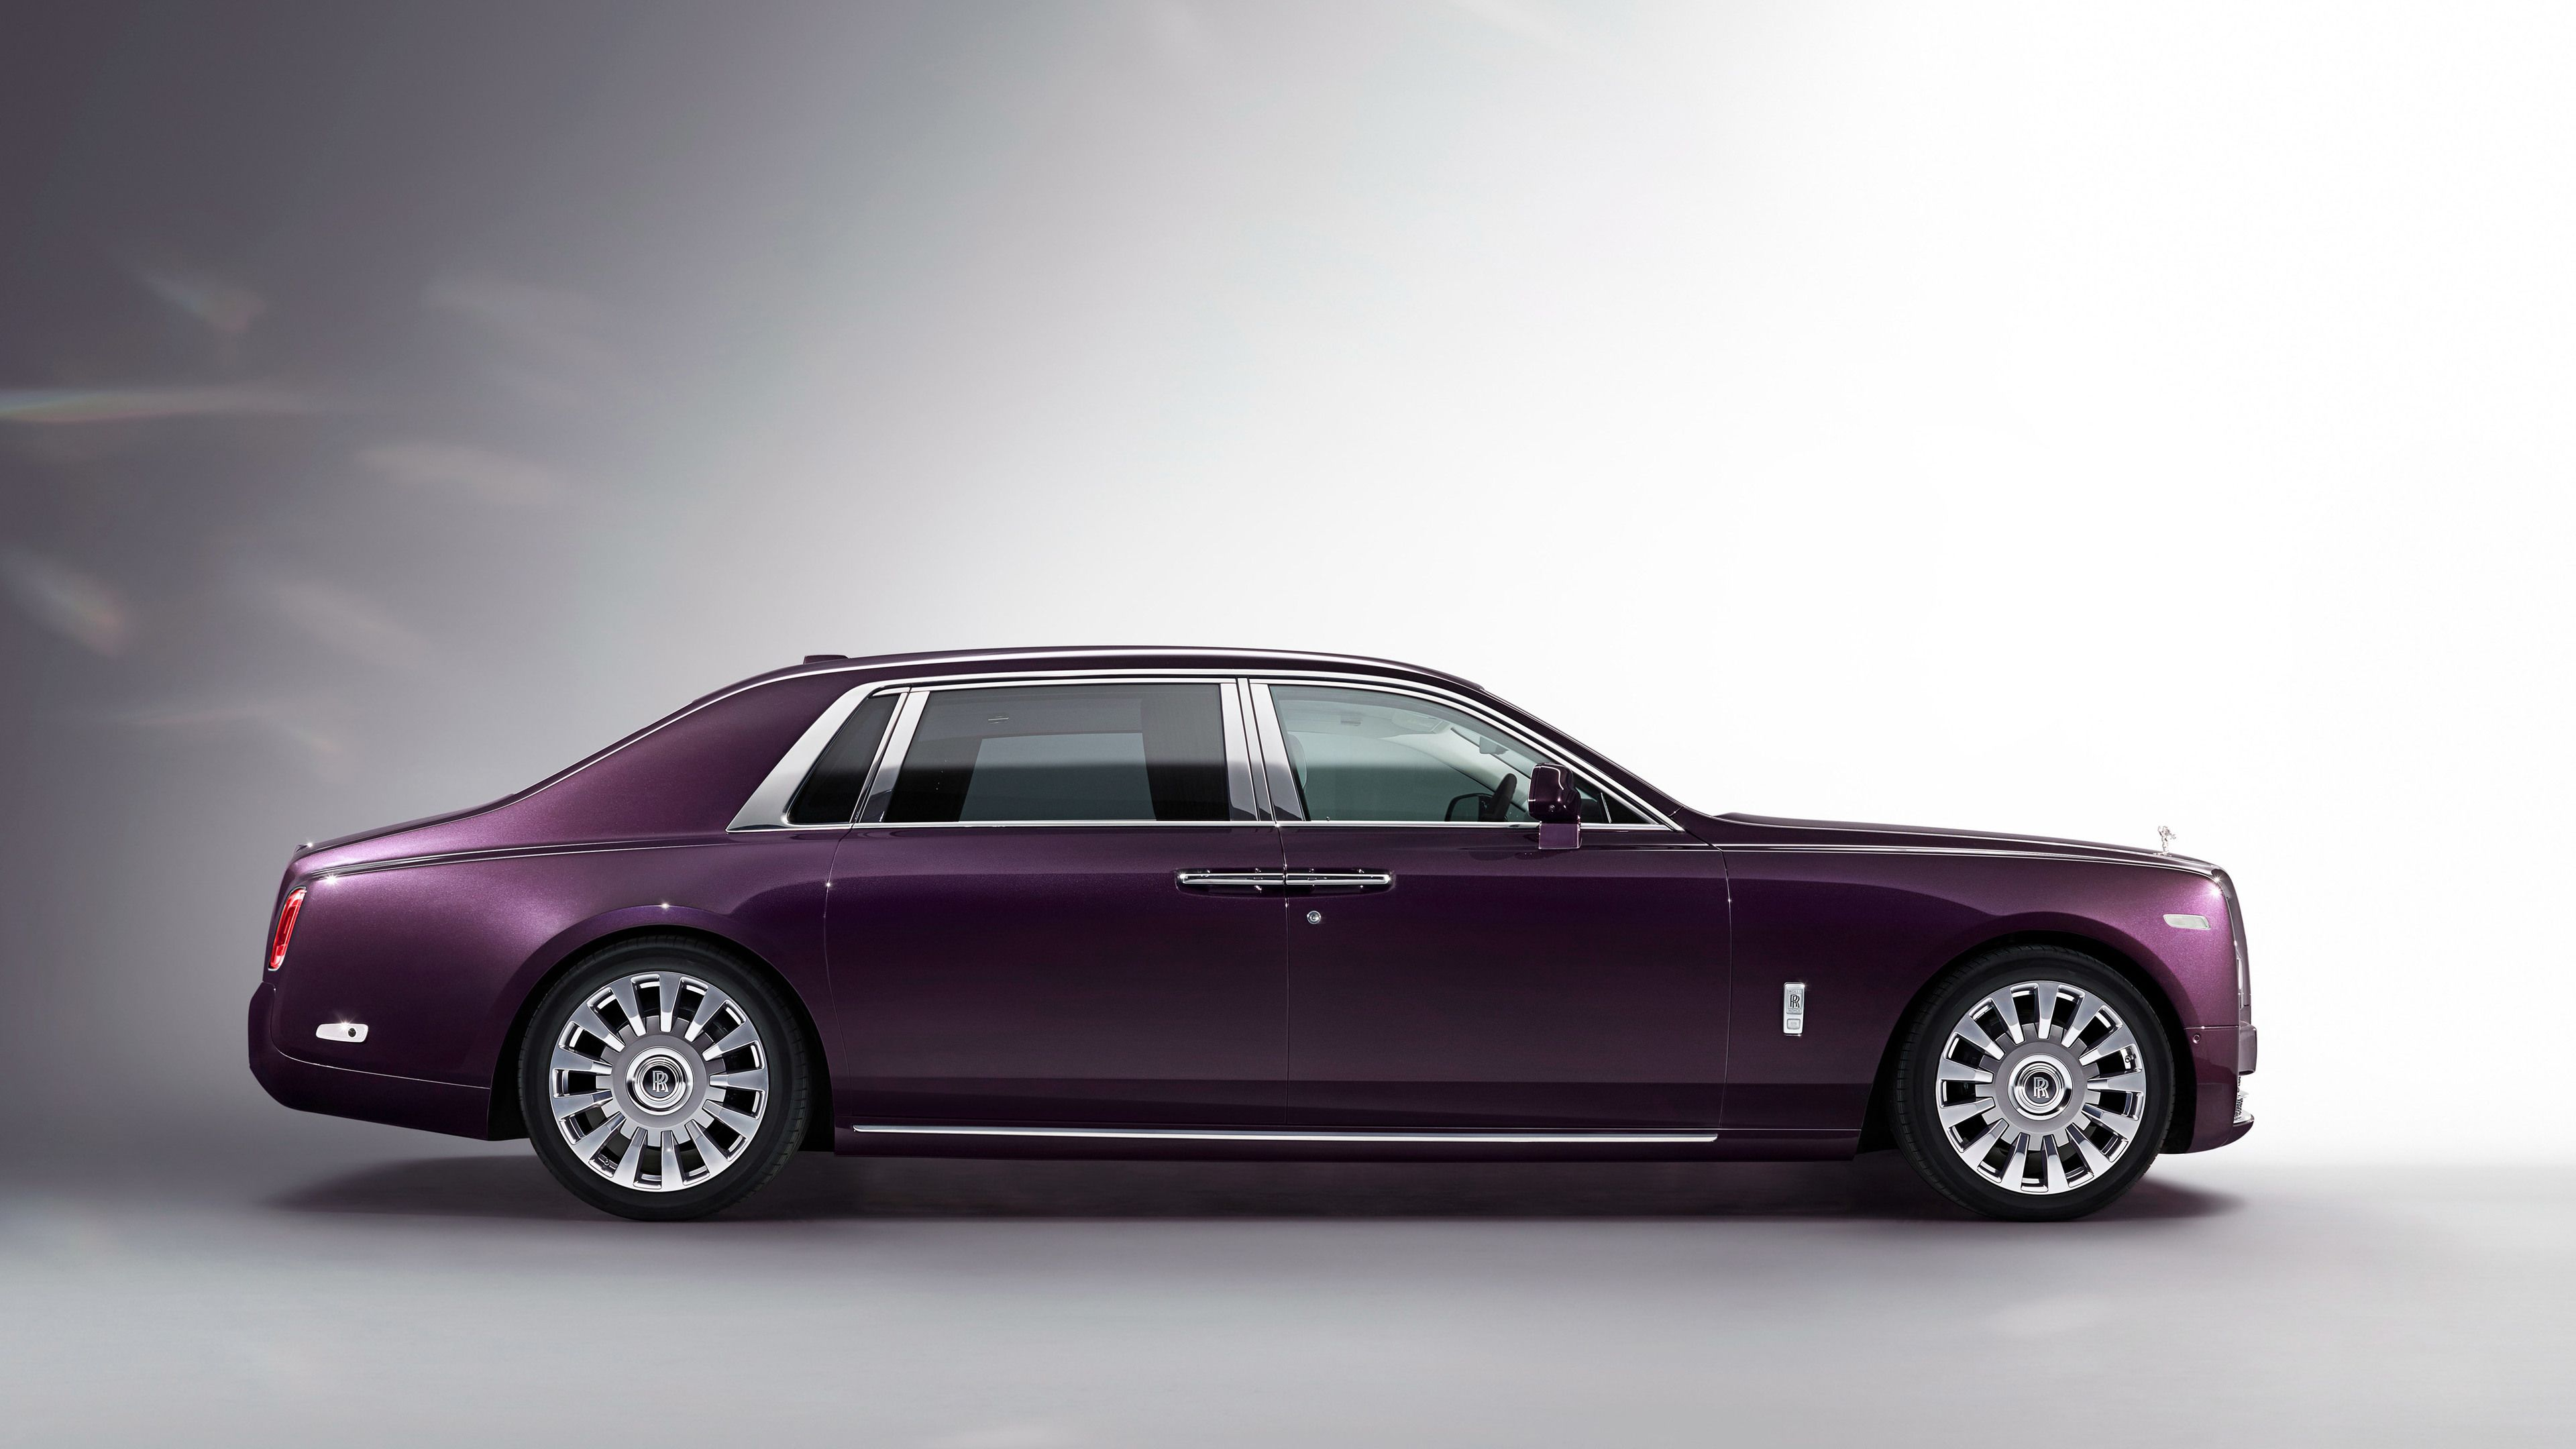 Rolls Royce Phantom EWB 2017 rolls royce wallpapers, rolls royce phantom wallpap…